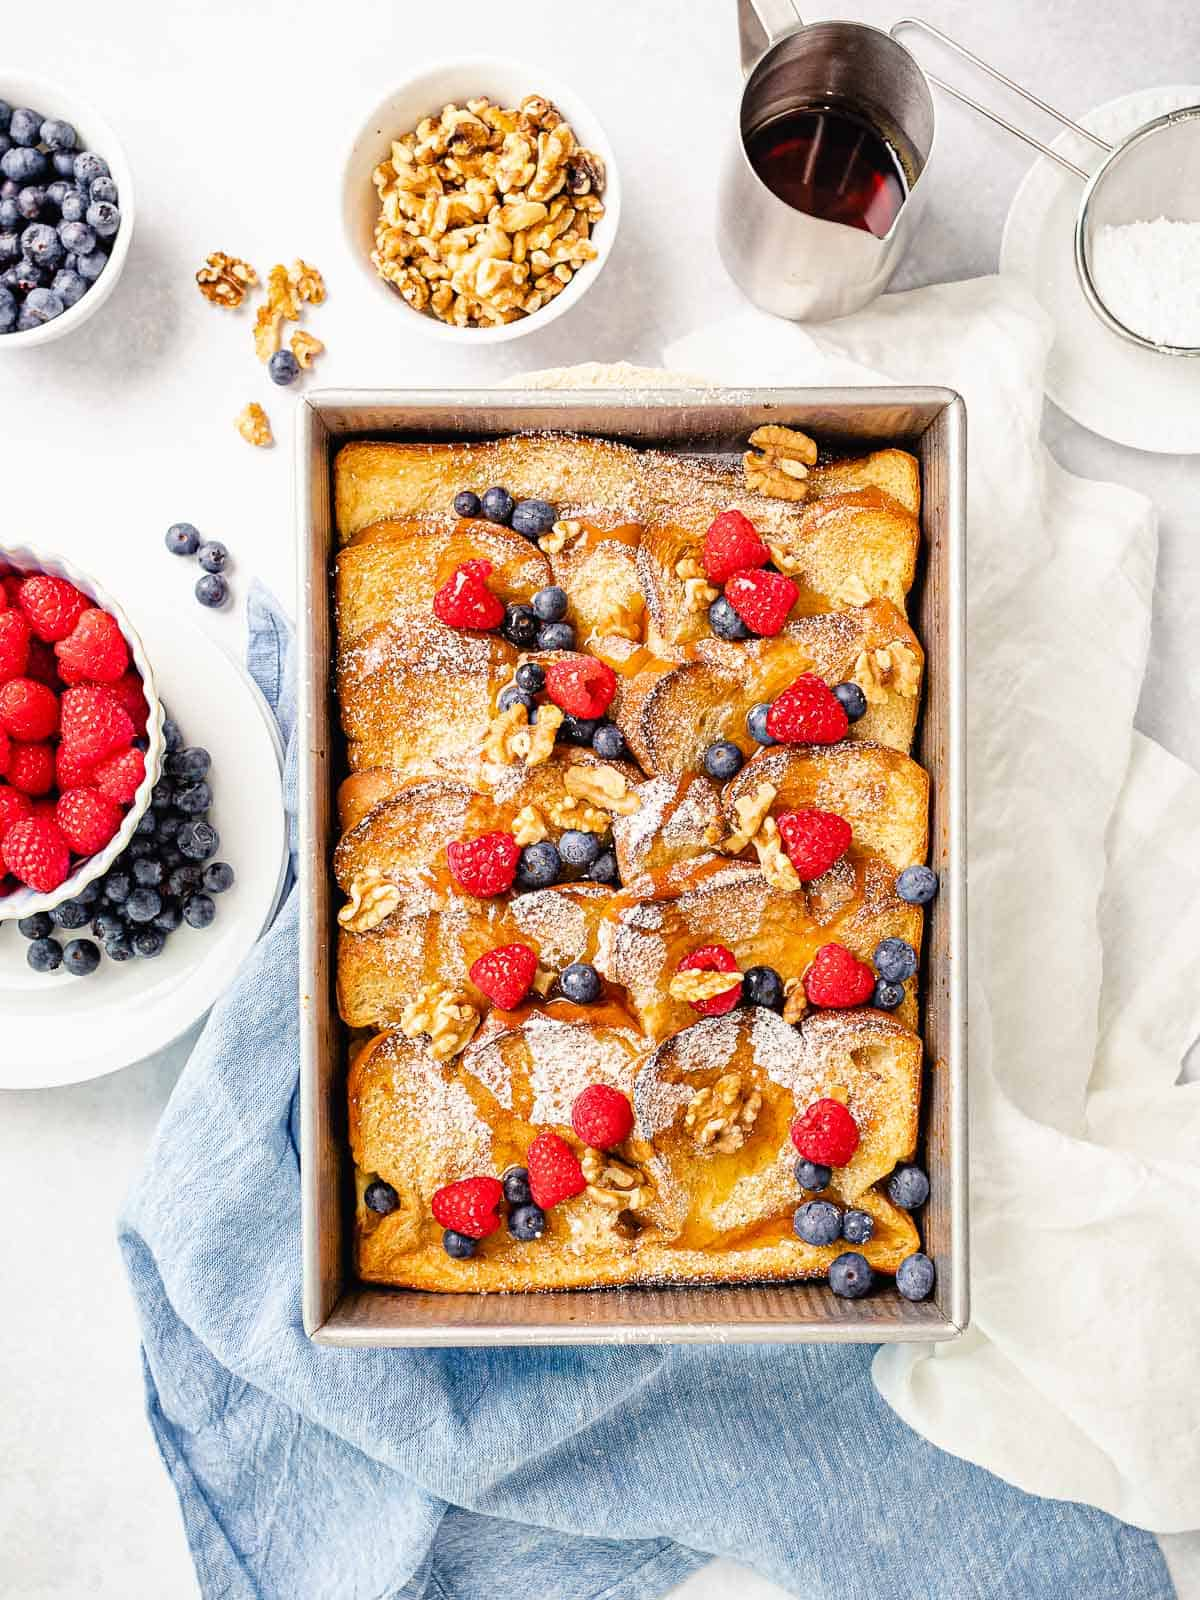 Overnight baked french toast casserole with blueberries, rapsberries, and maple syrup surrounded by toppings.